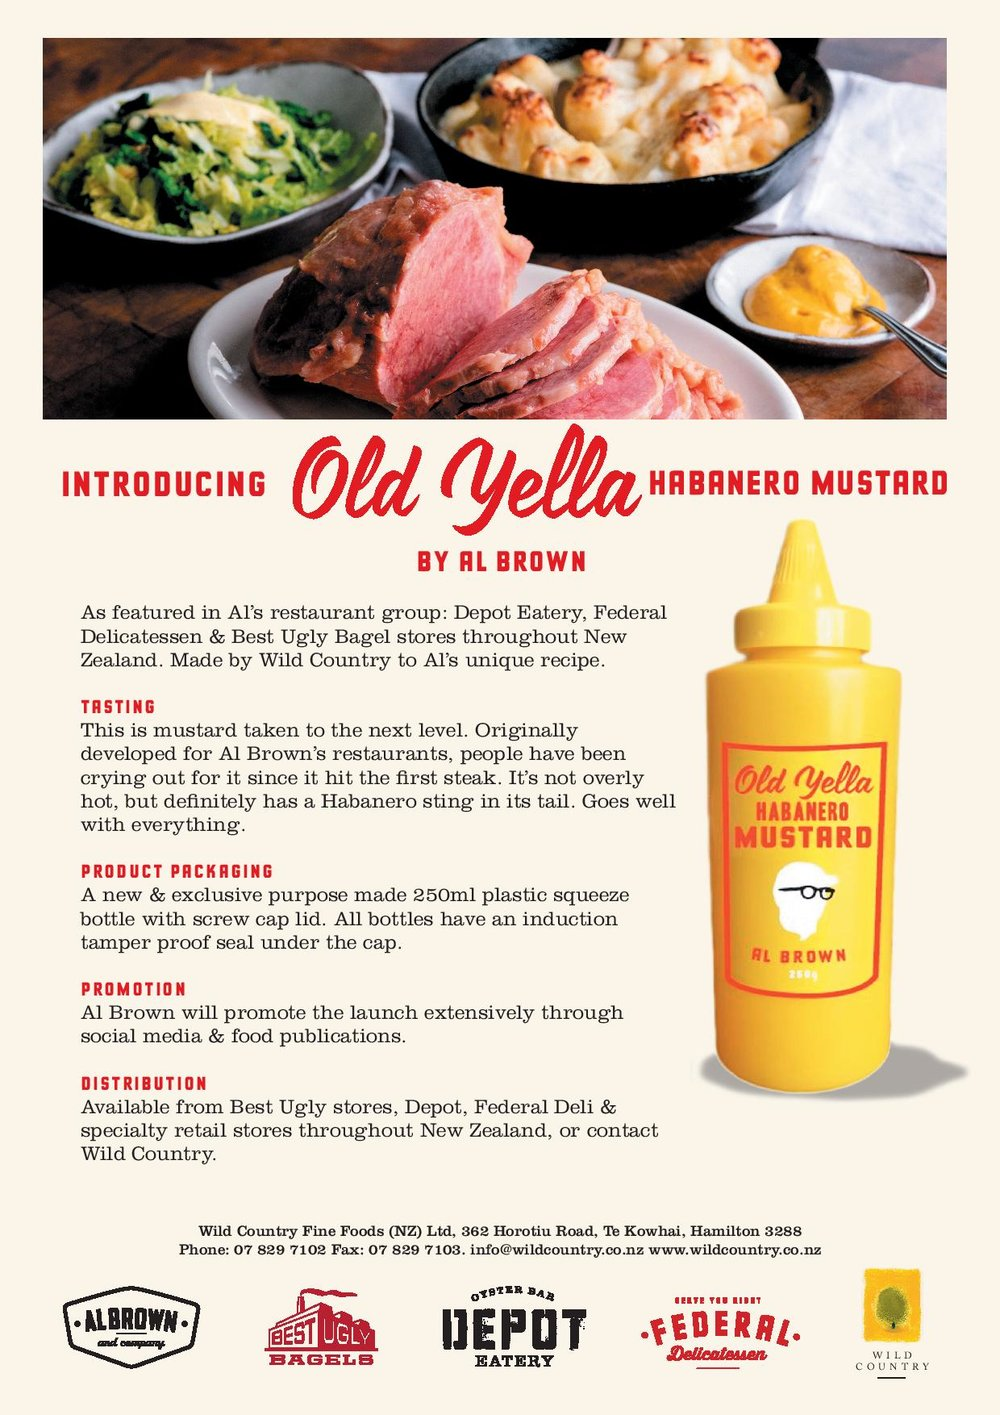 PR FLYER FOR OLD YELLA MUSTARD-page-001.jpg